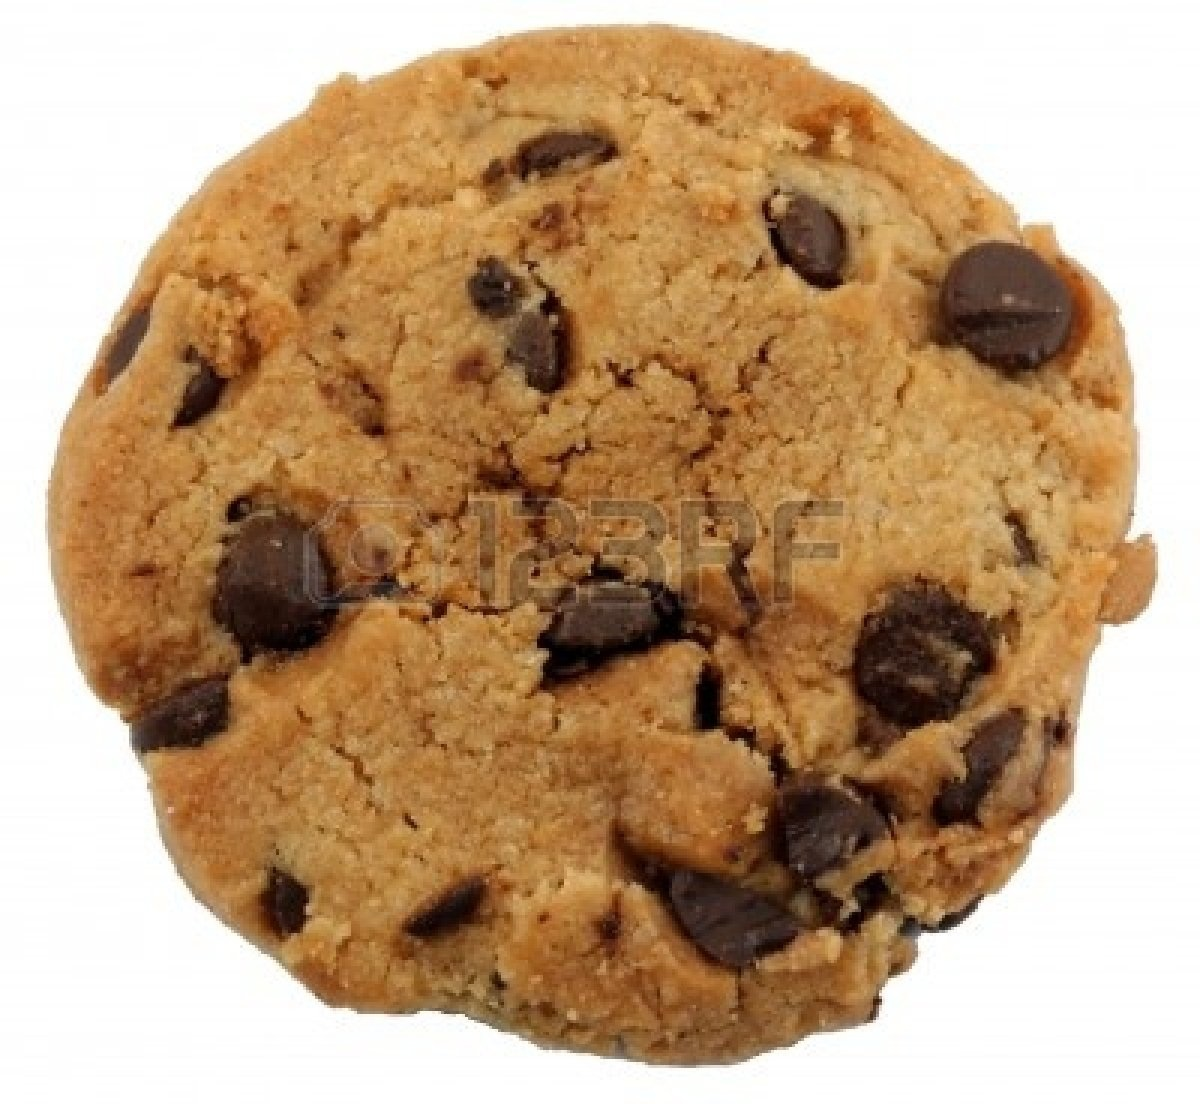 3/21/2020 COOKIES AND KIDS